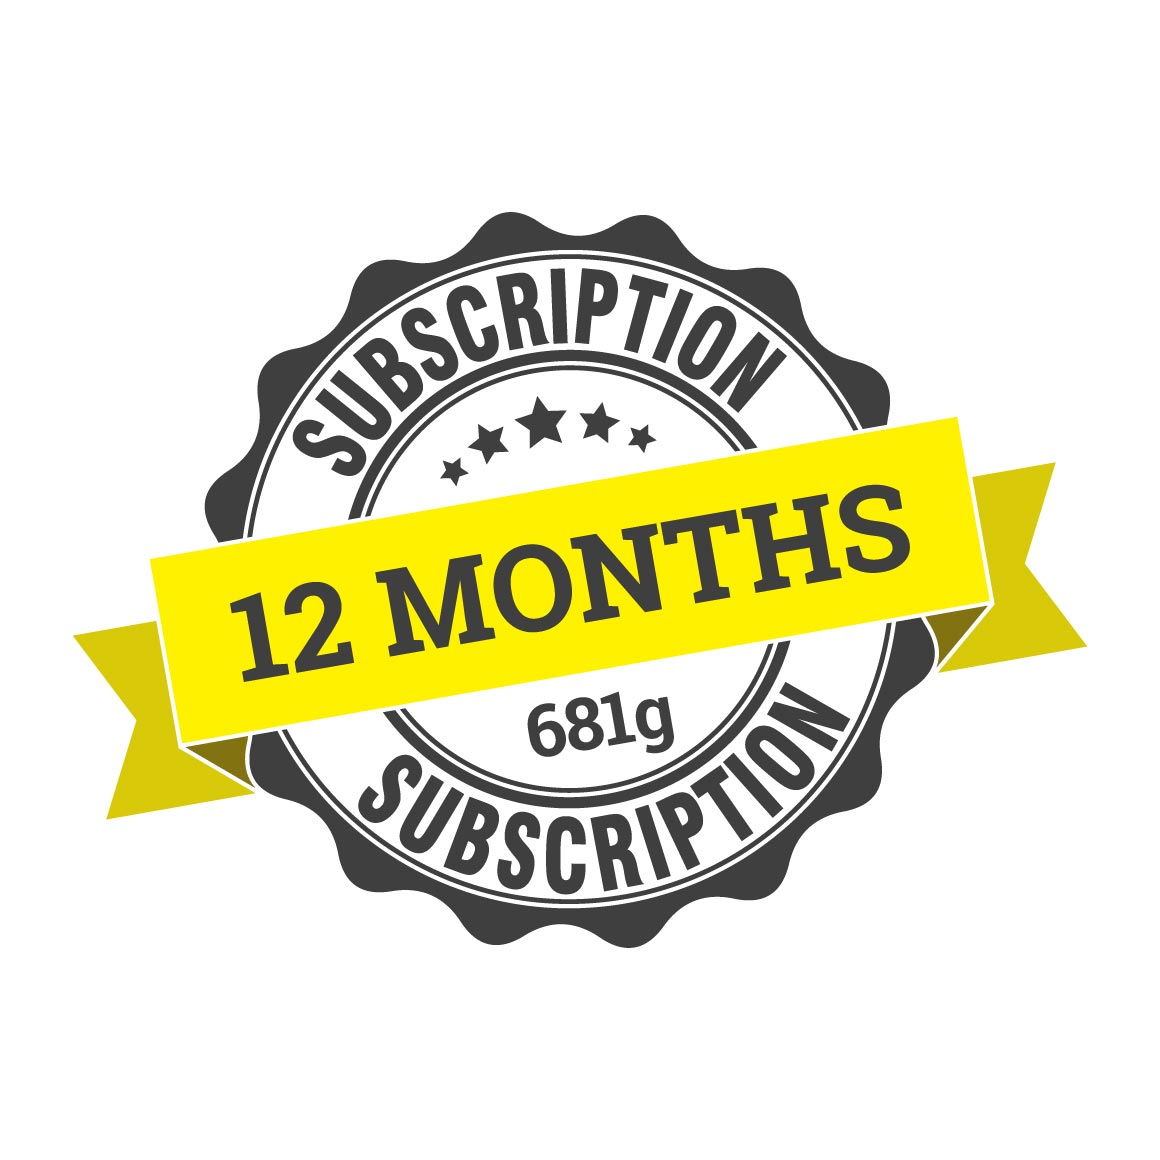 12 month coffee subscription (12 x 681g)